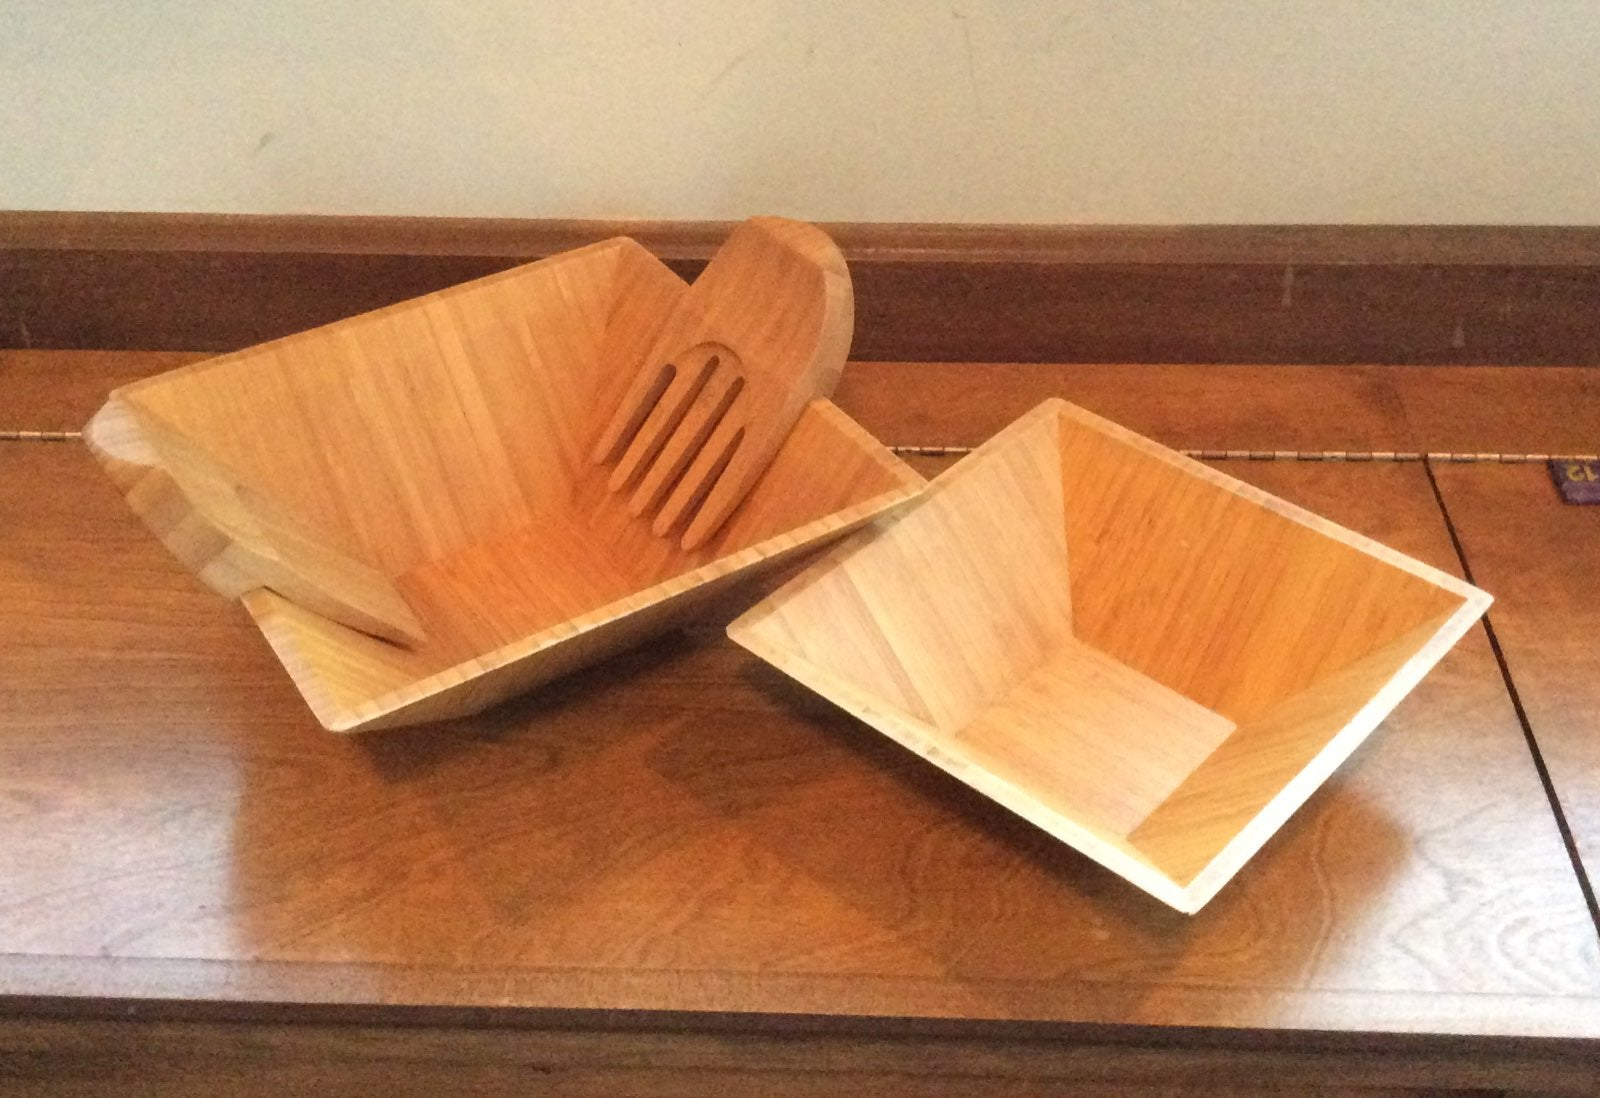 Pampered Chef bamboo salad set